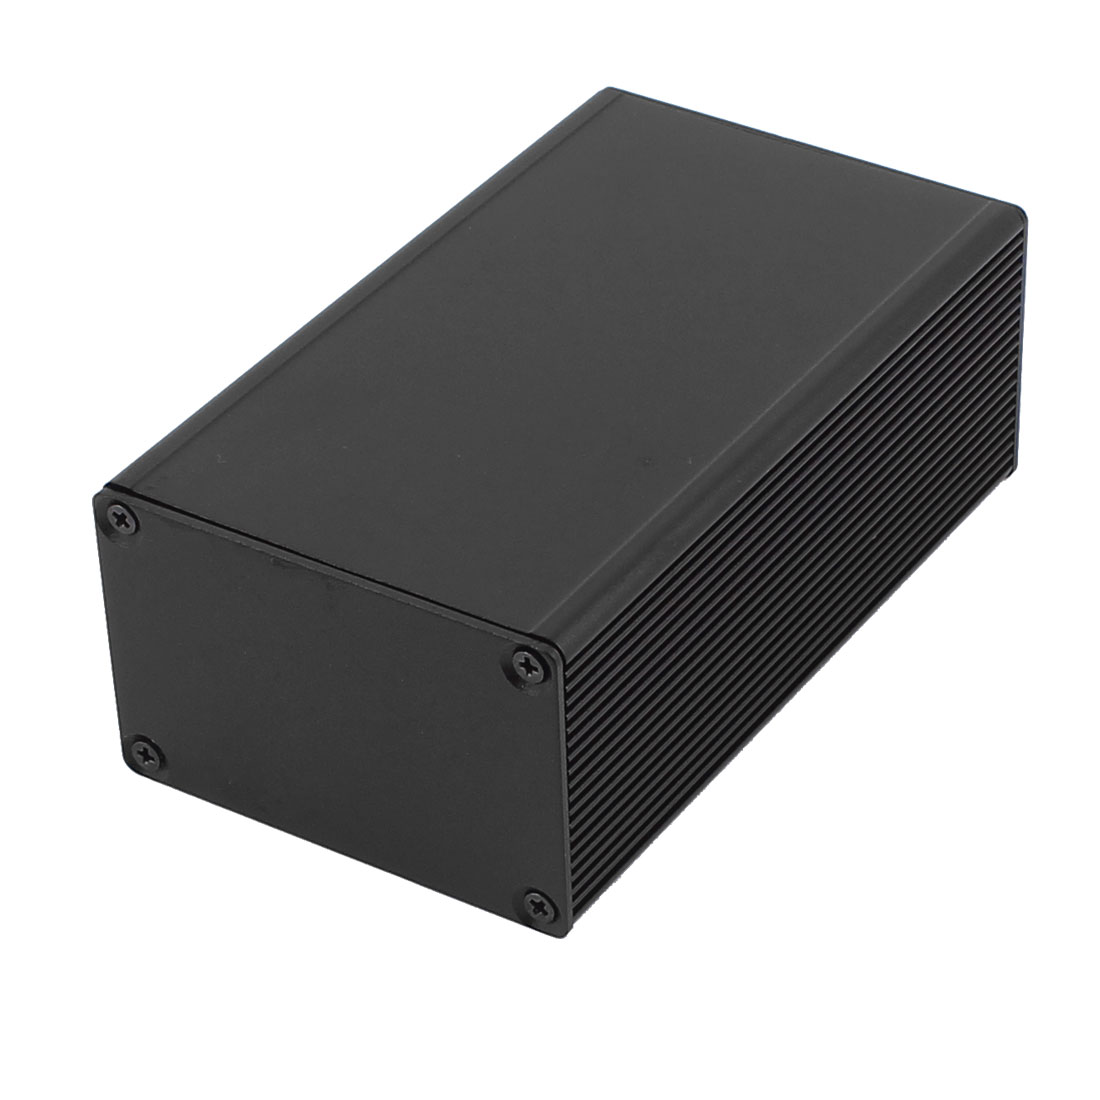 115mm x 67mm x 43mm Sealed Aluminum Enclosure Case Junction Box Black